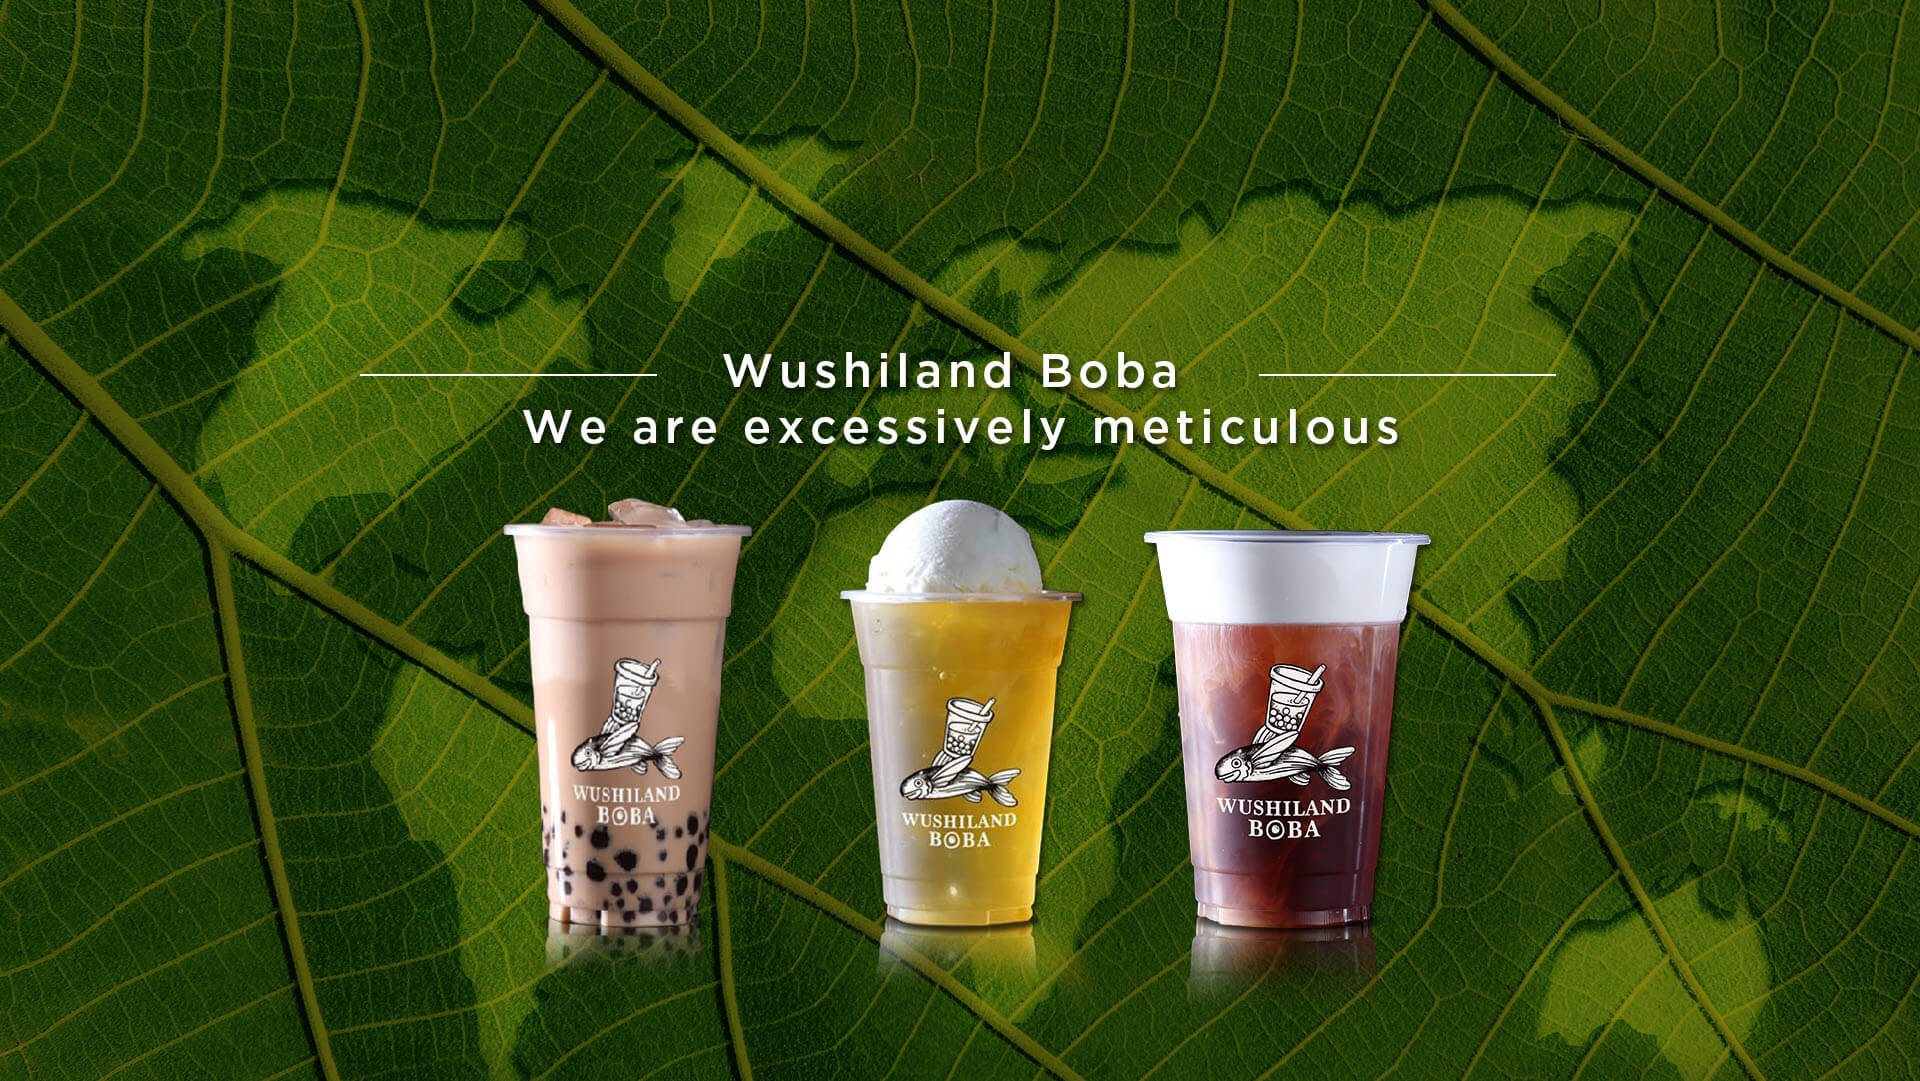 Wushiland Boba - We are excessively meticulous